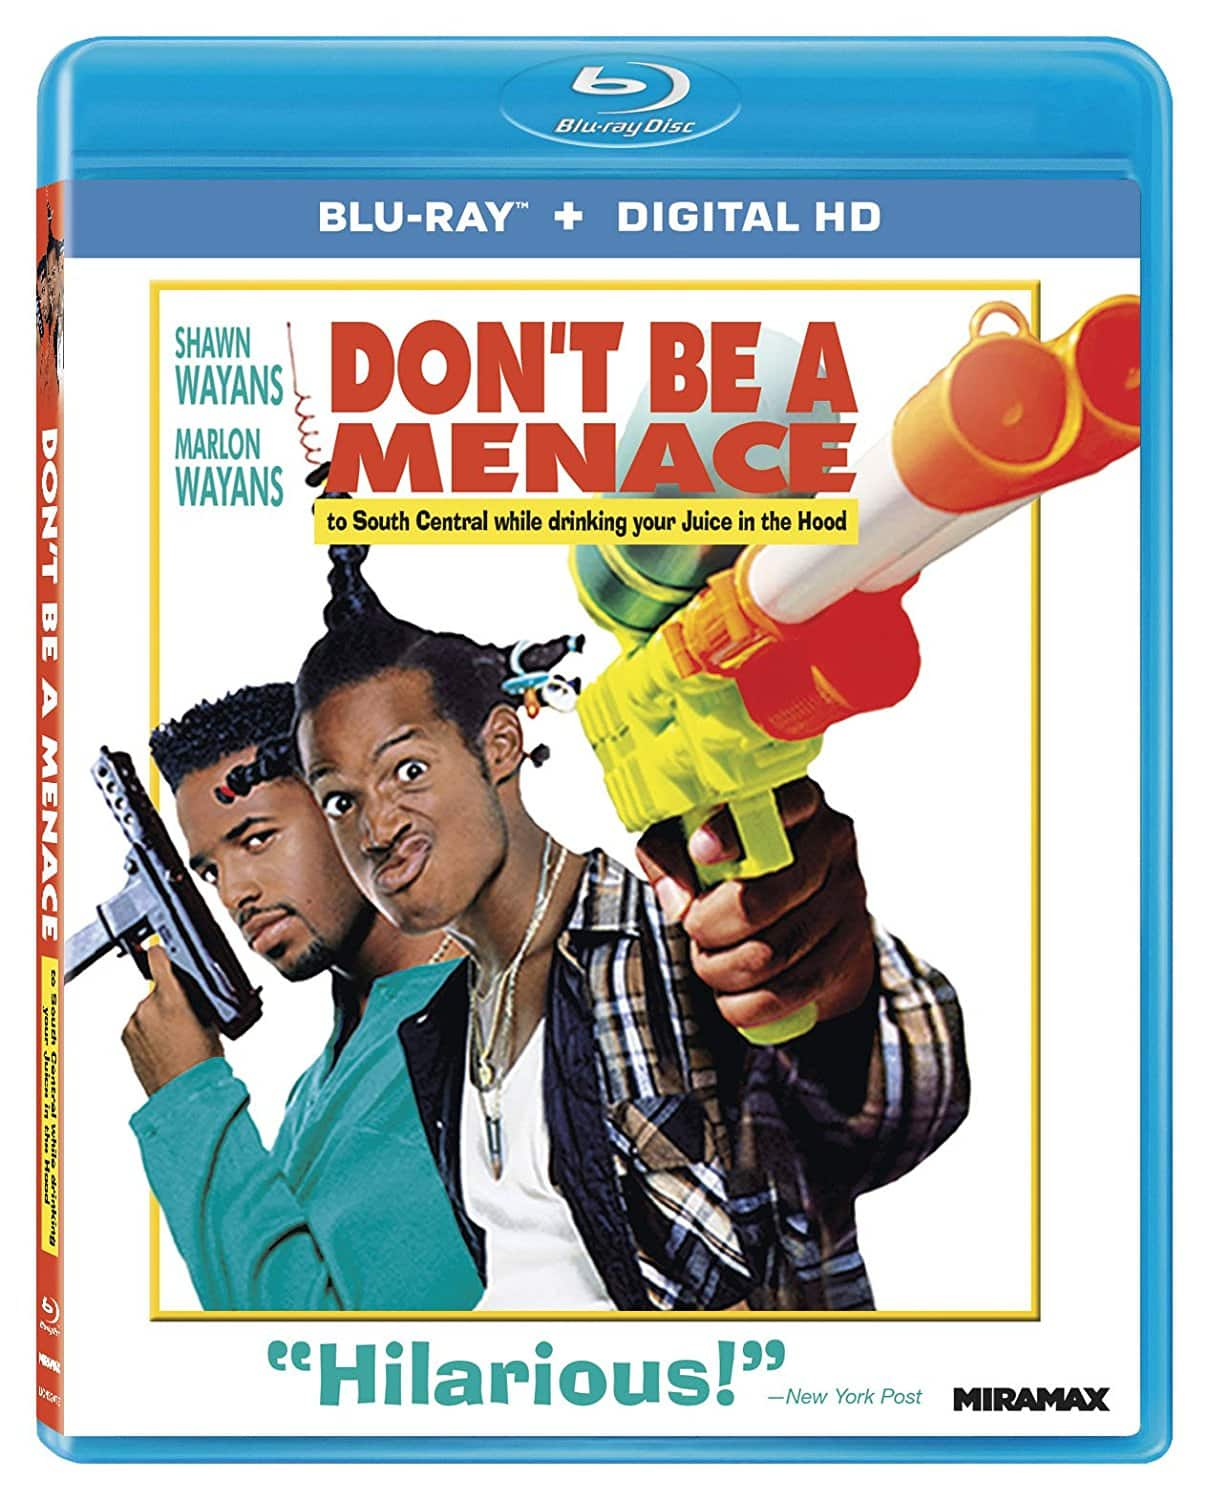 Don't Be a Menace to South Central While Drinking (Blu-Ray + Digital HD) $5.36 via Amazon